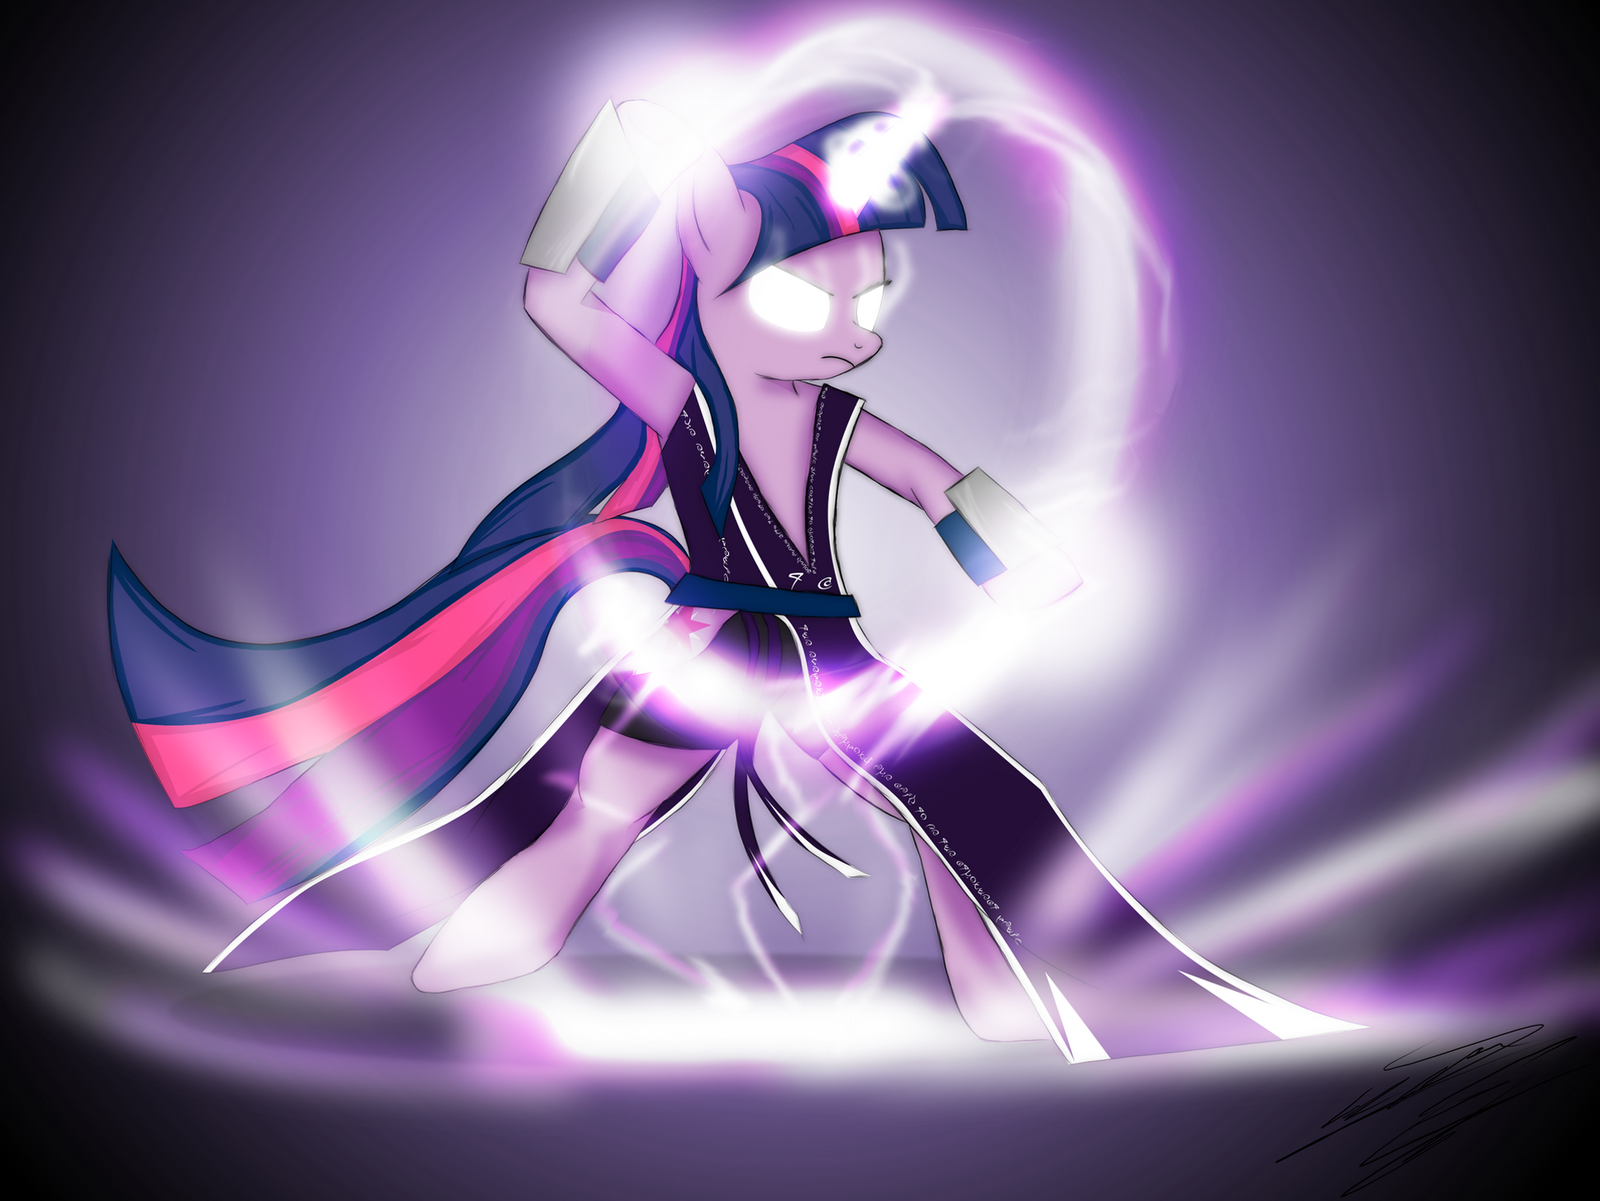 badass_anthro_twilight_by_sierraex-d4sewj5.png - -